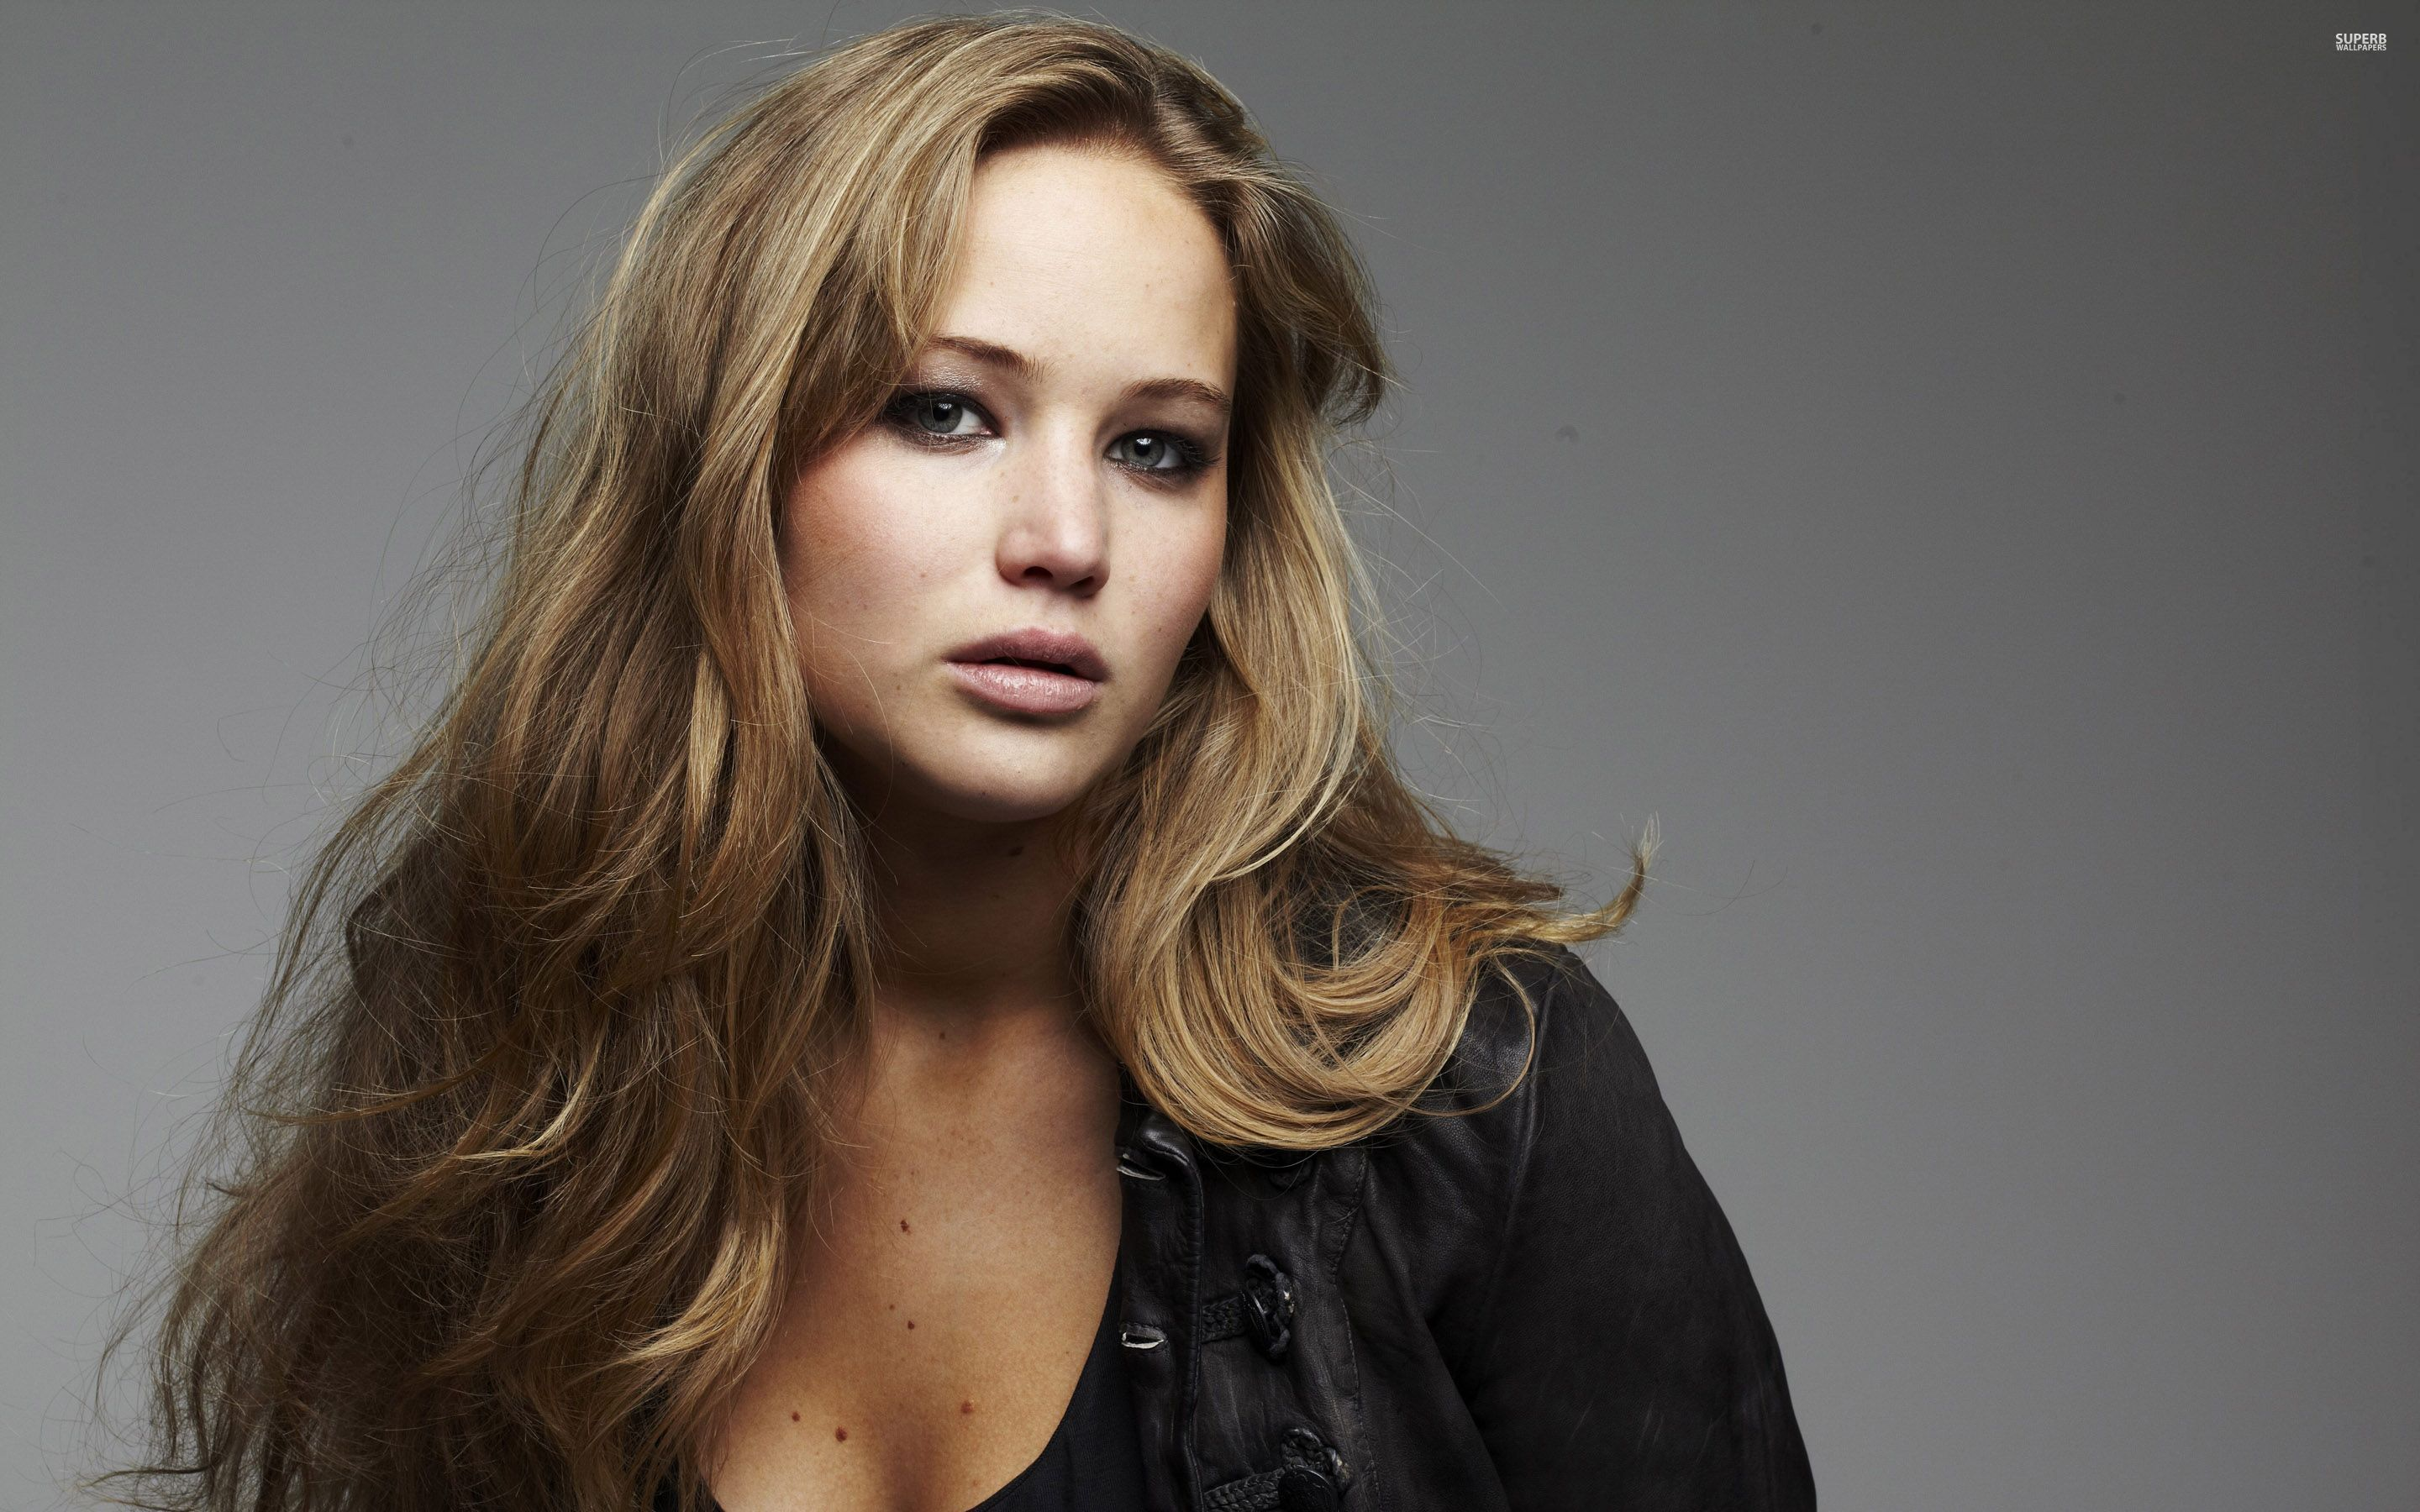 Jennifer Lawrence wallpaper 2880x1800 jpg